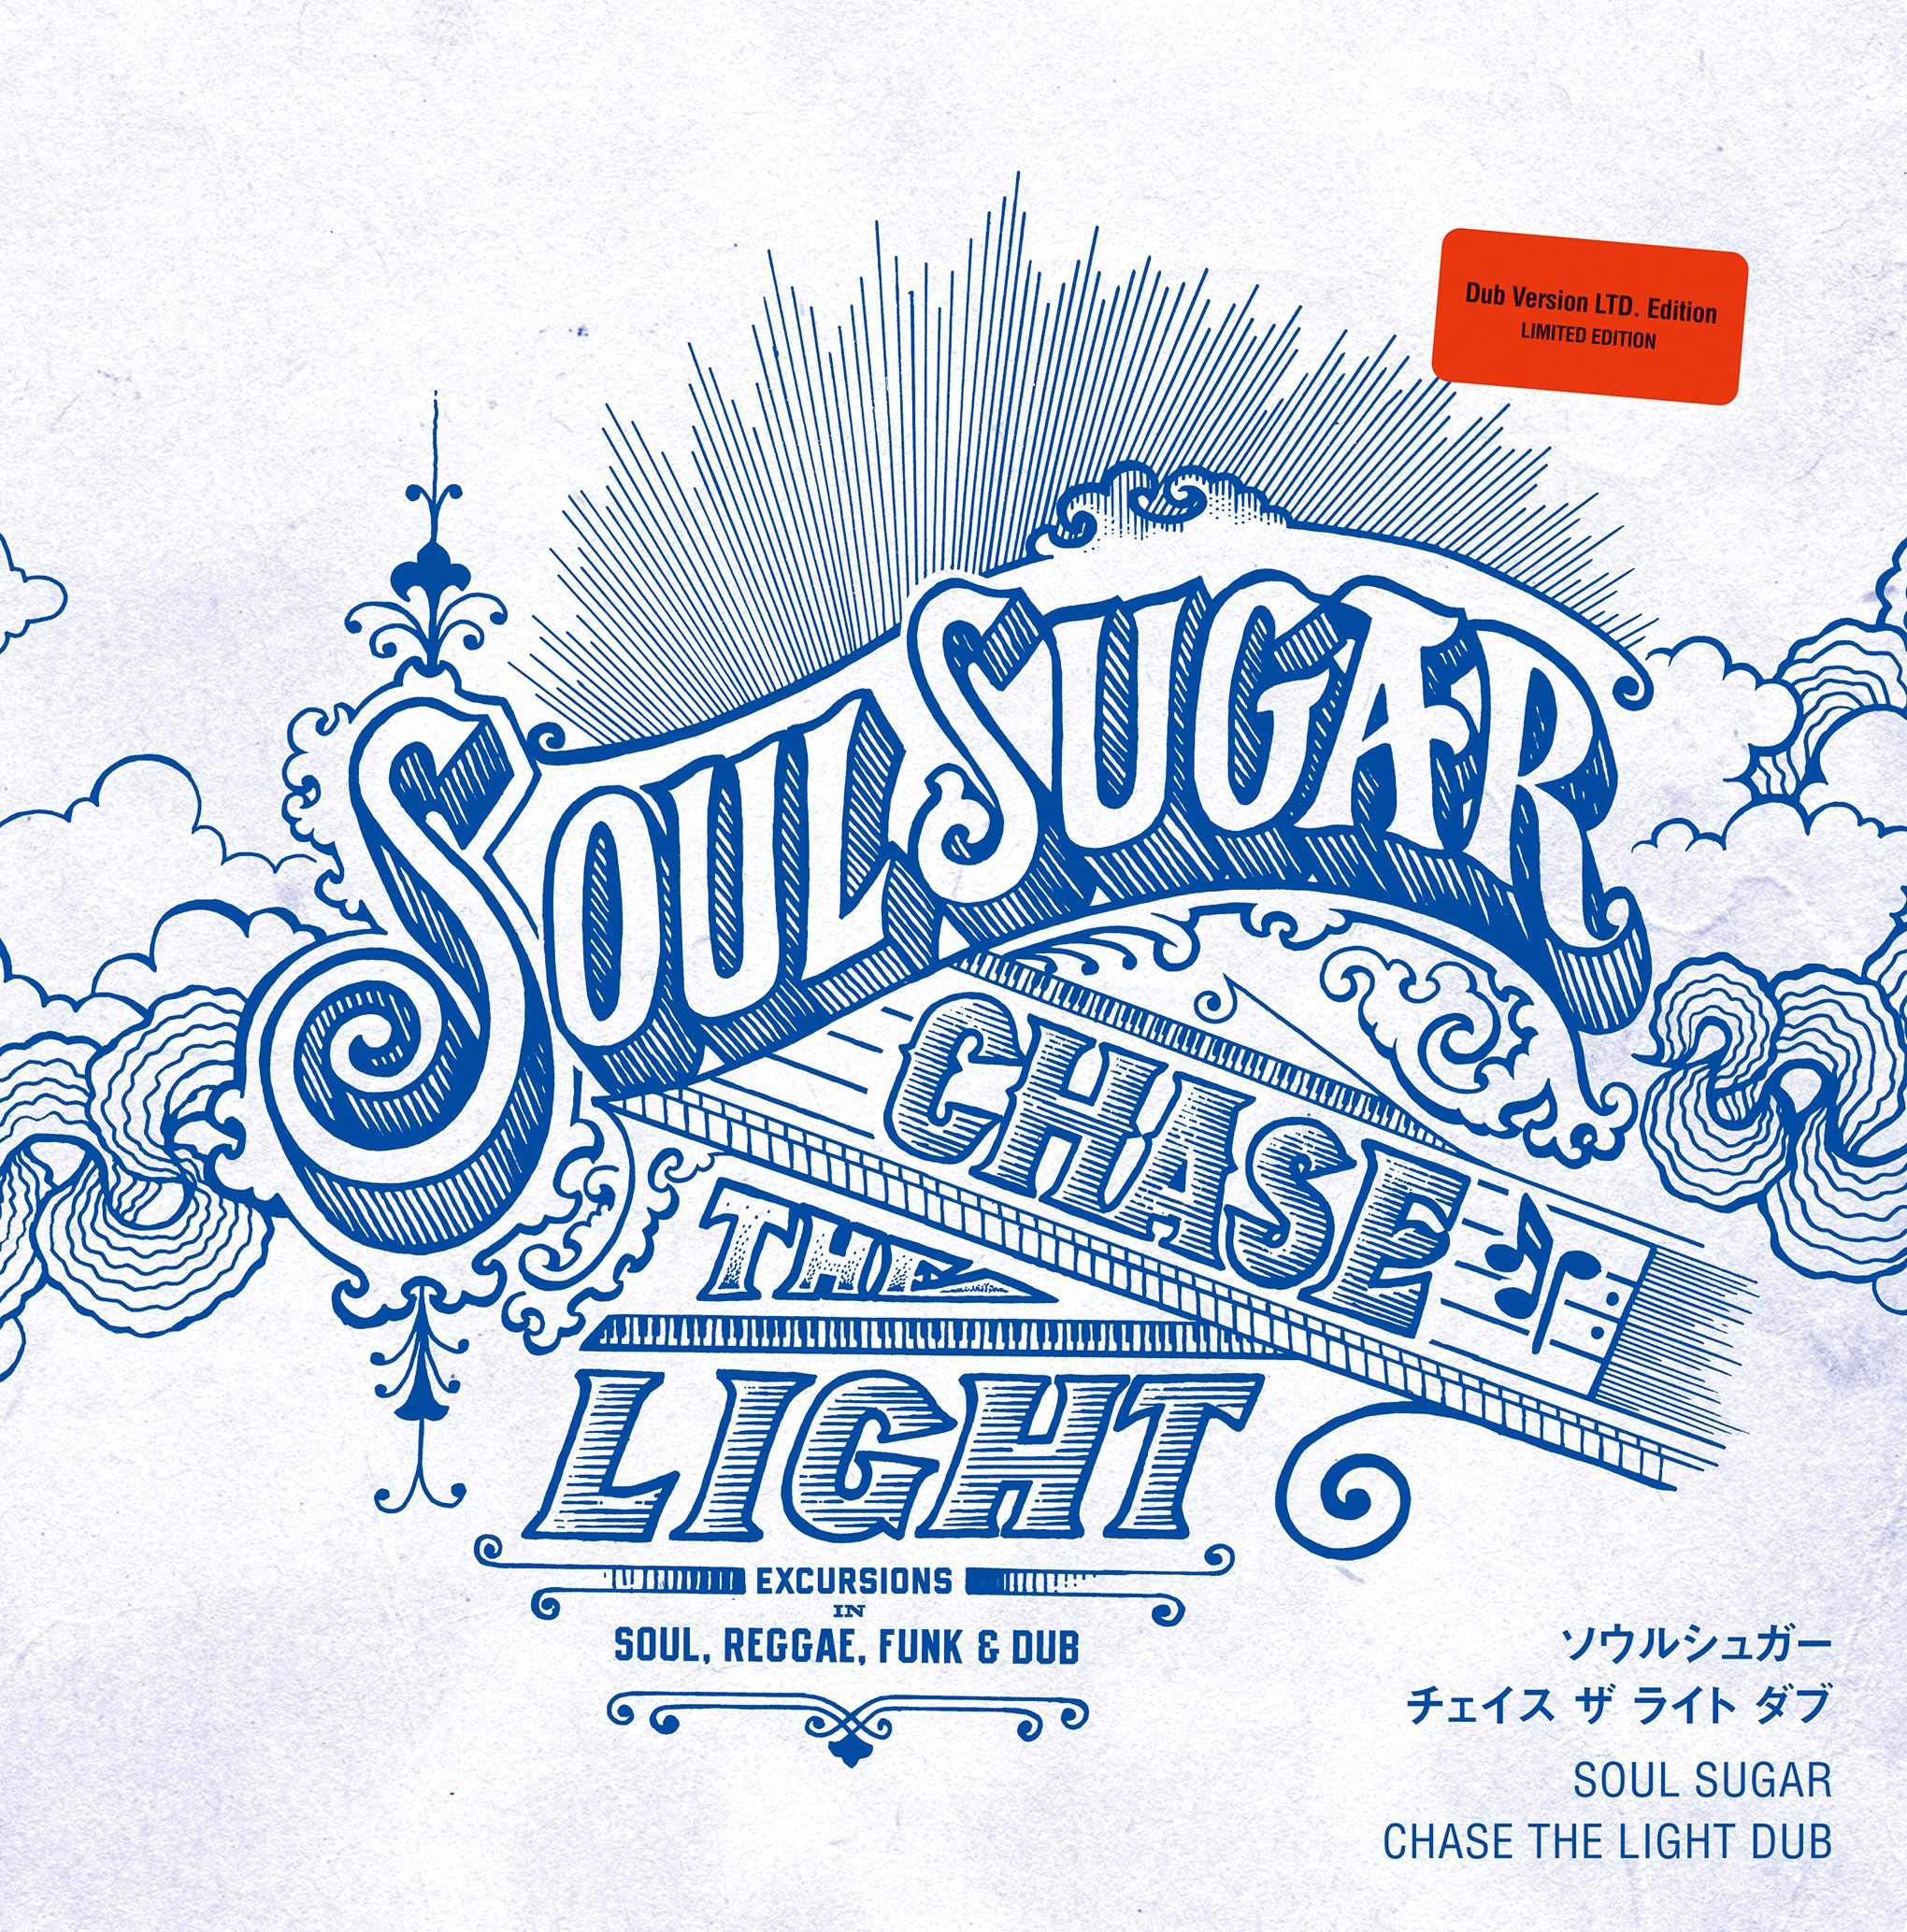 037_SOUL SUGAR	CHASE THE LIGHT DUB